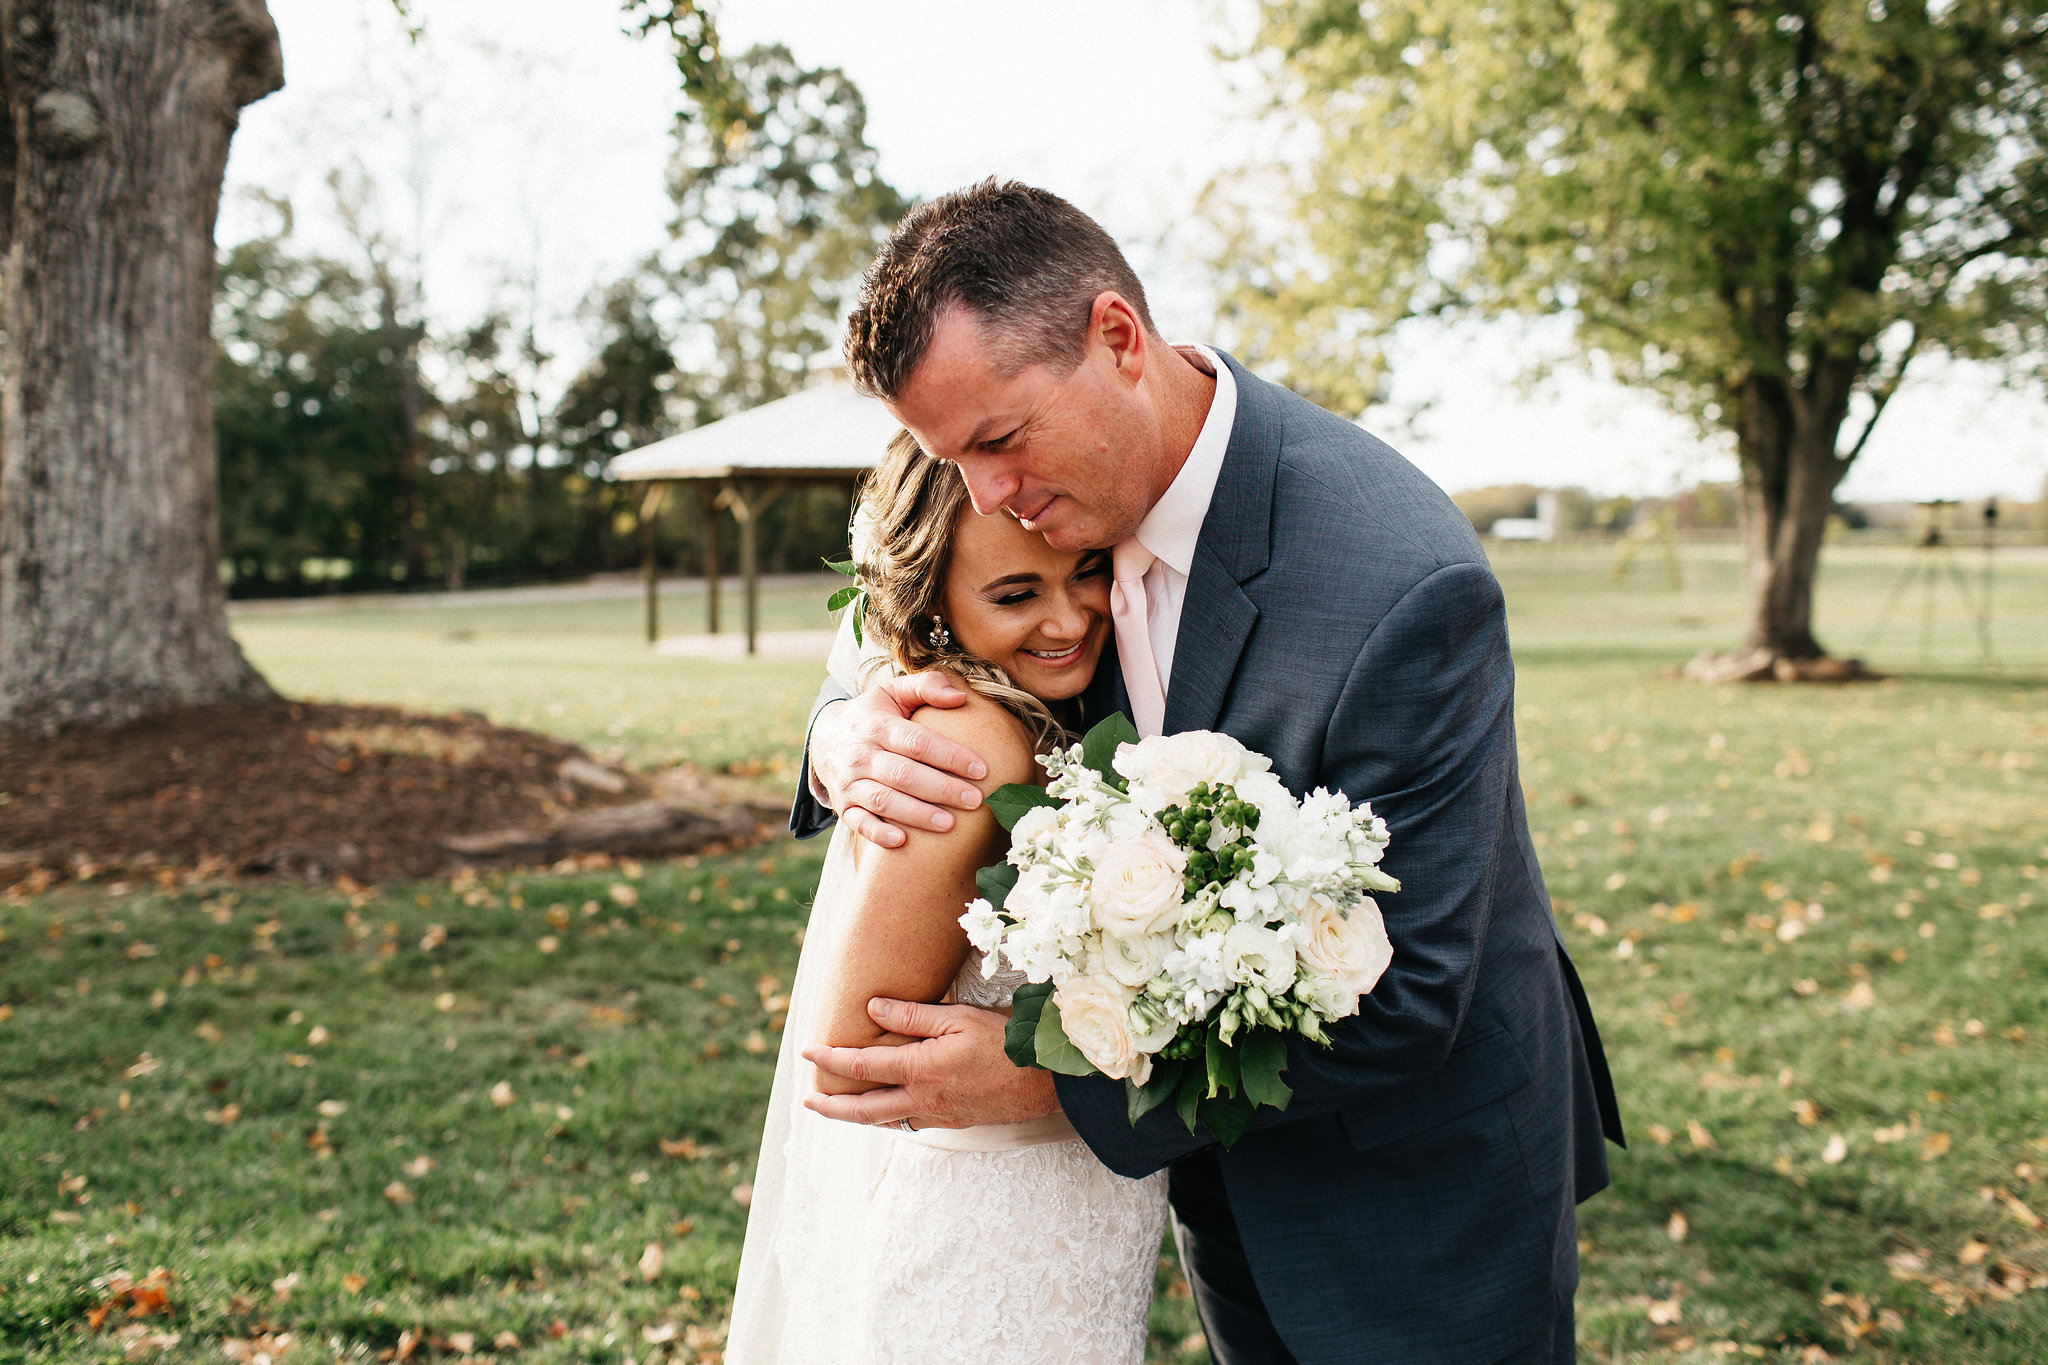 Ashley&NathanMarried2017-11-10at19.26.54PM70.jpg